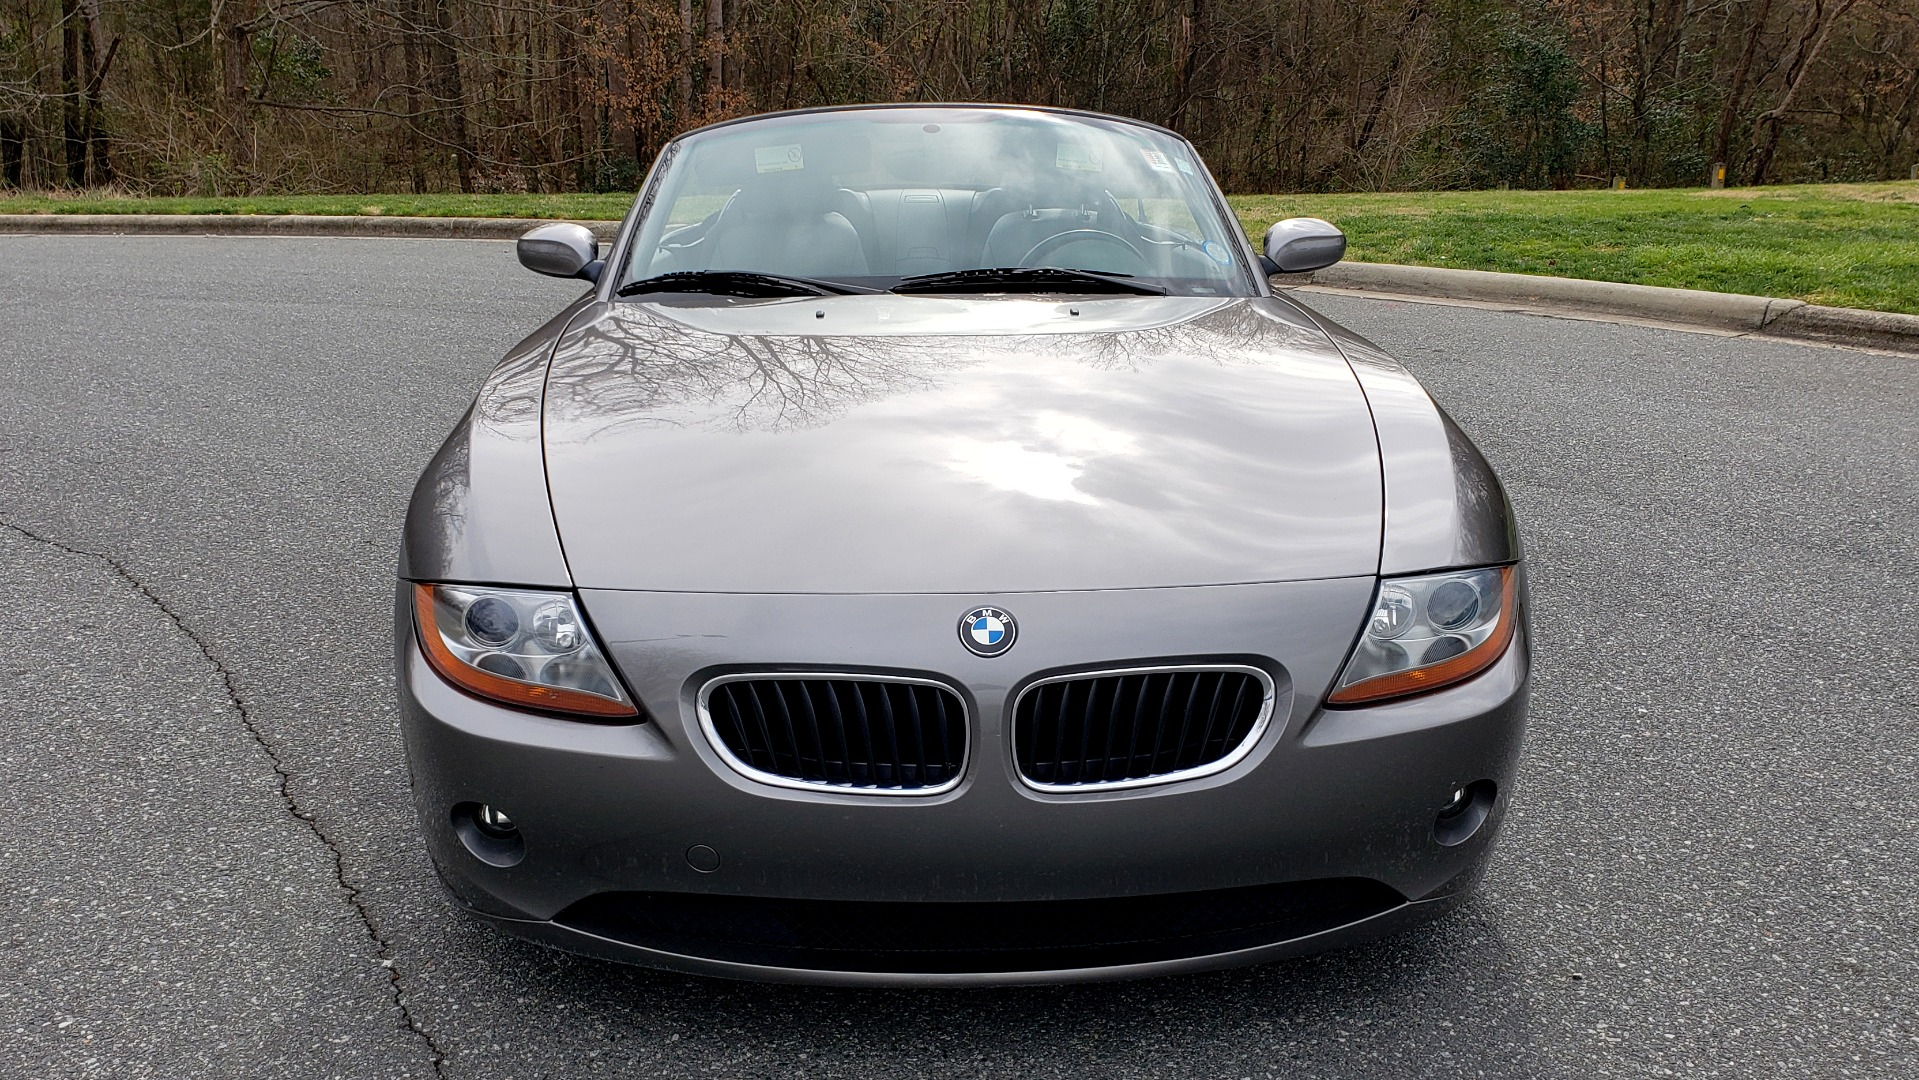 Used 2003 BMW Z4 3.0i ROADSTER / 6-SPD MAN / PREMIUM PKG / SPORT PKG / HTD STS for sale Sold at Formula Imports in Charlotte NC 28227 20